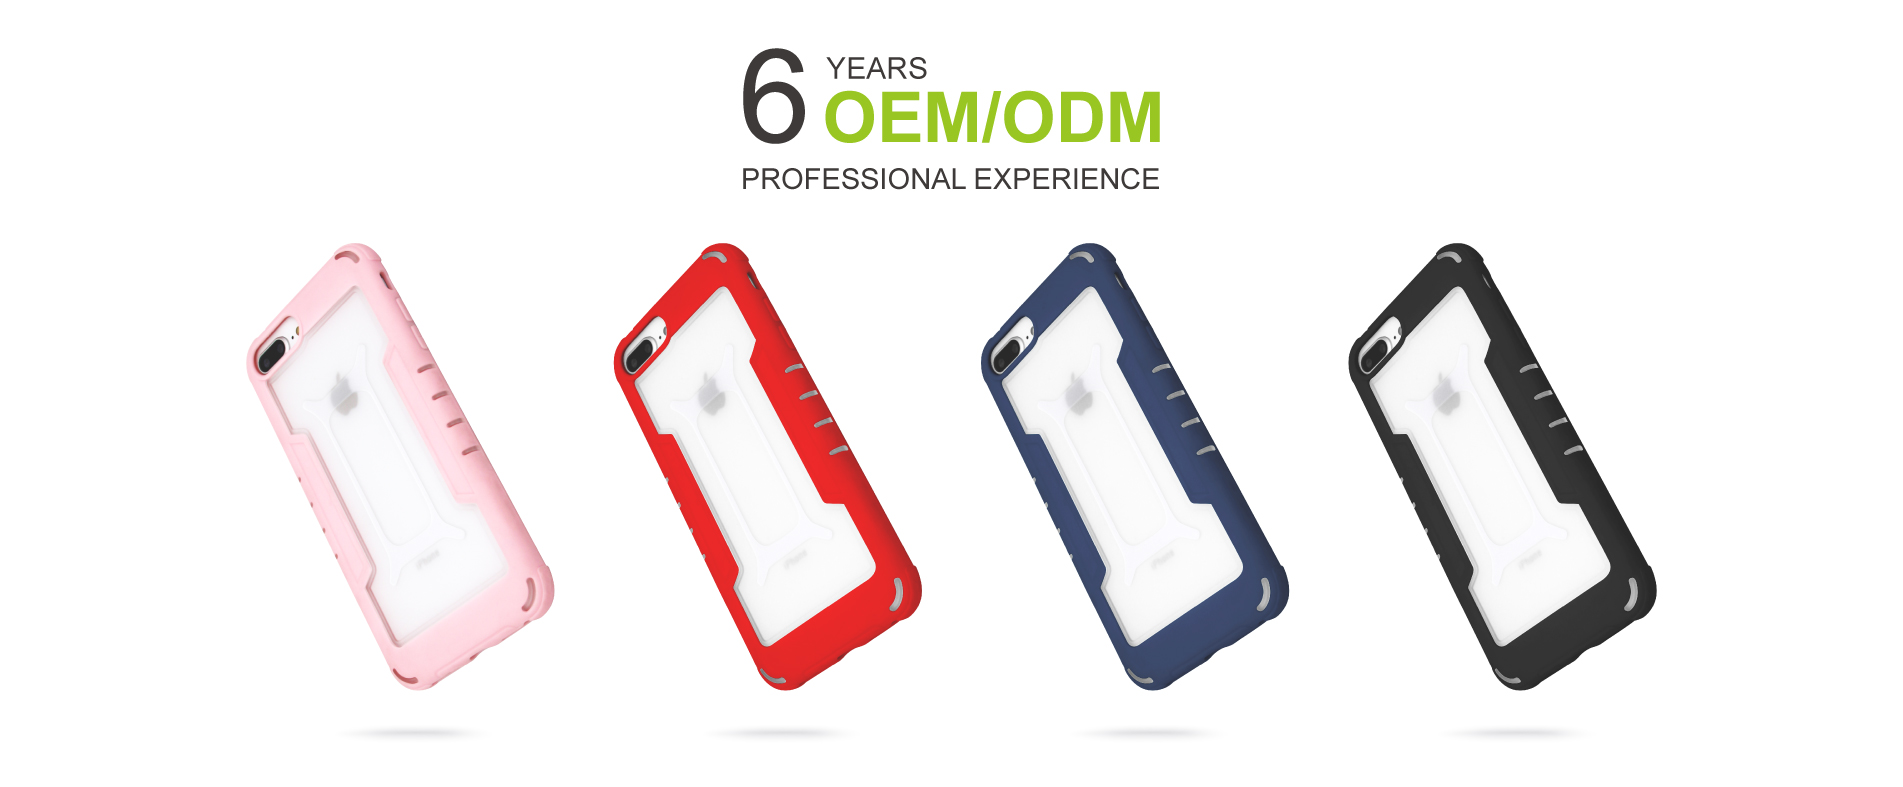 2 in 1 mobile phone case